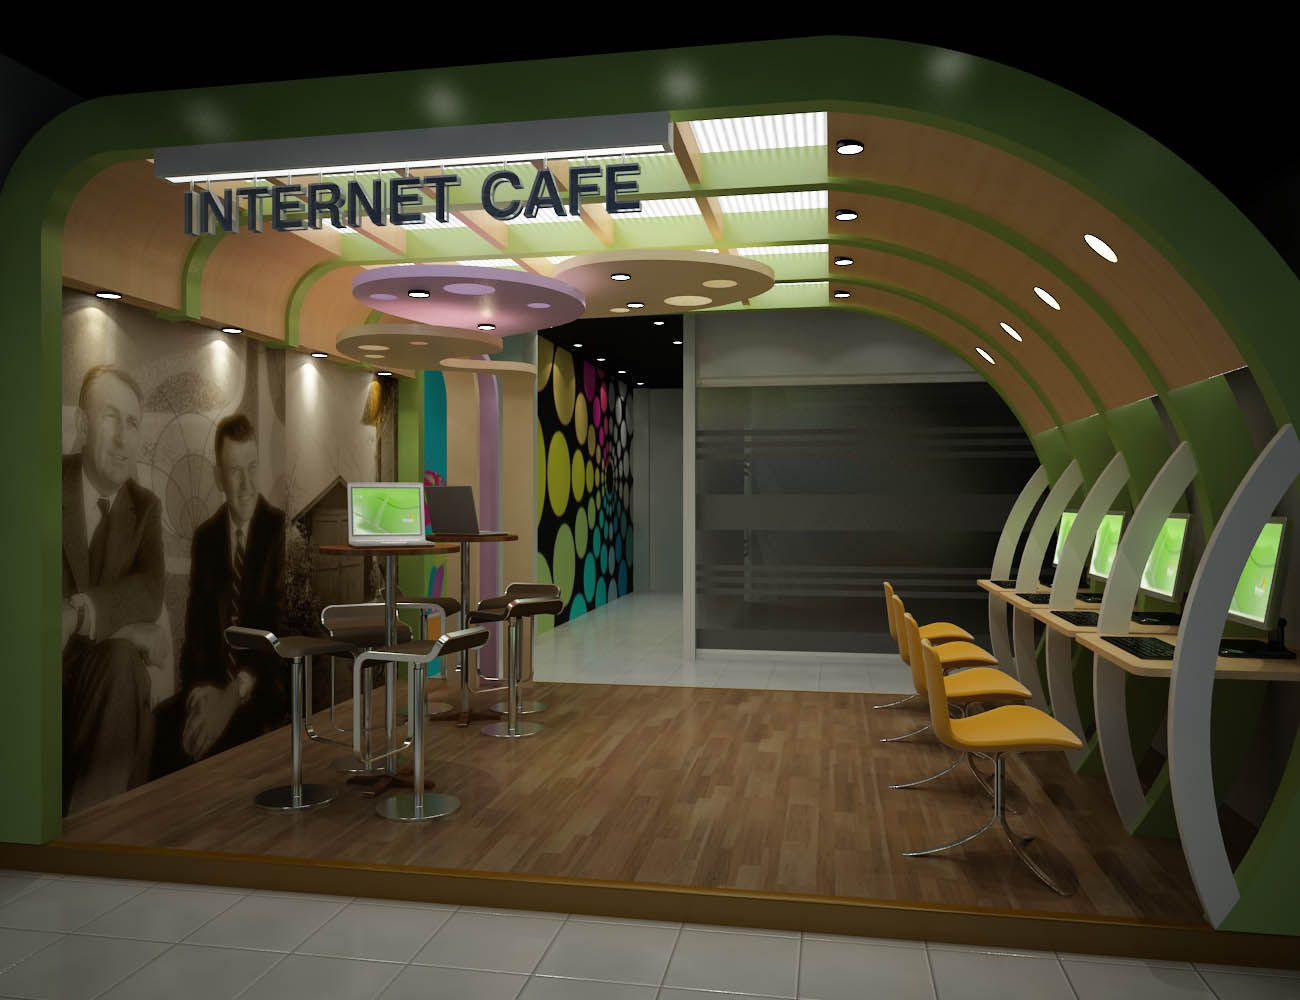 Internet Cafe Portfolio Work Liking The Curved Wall